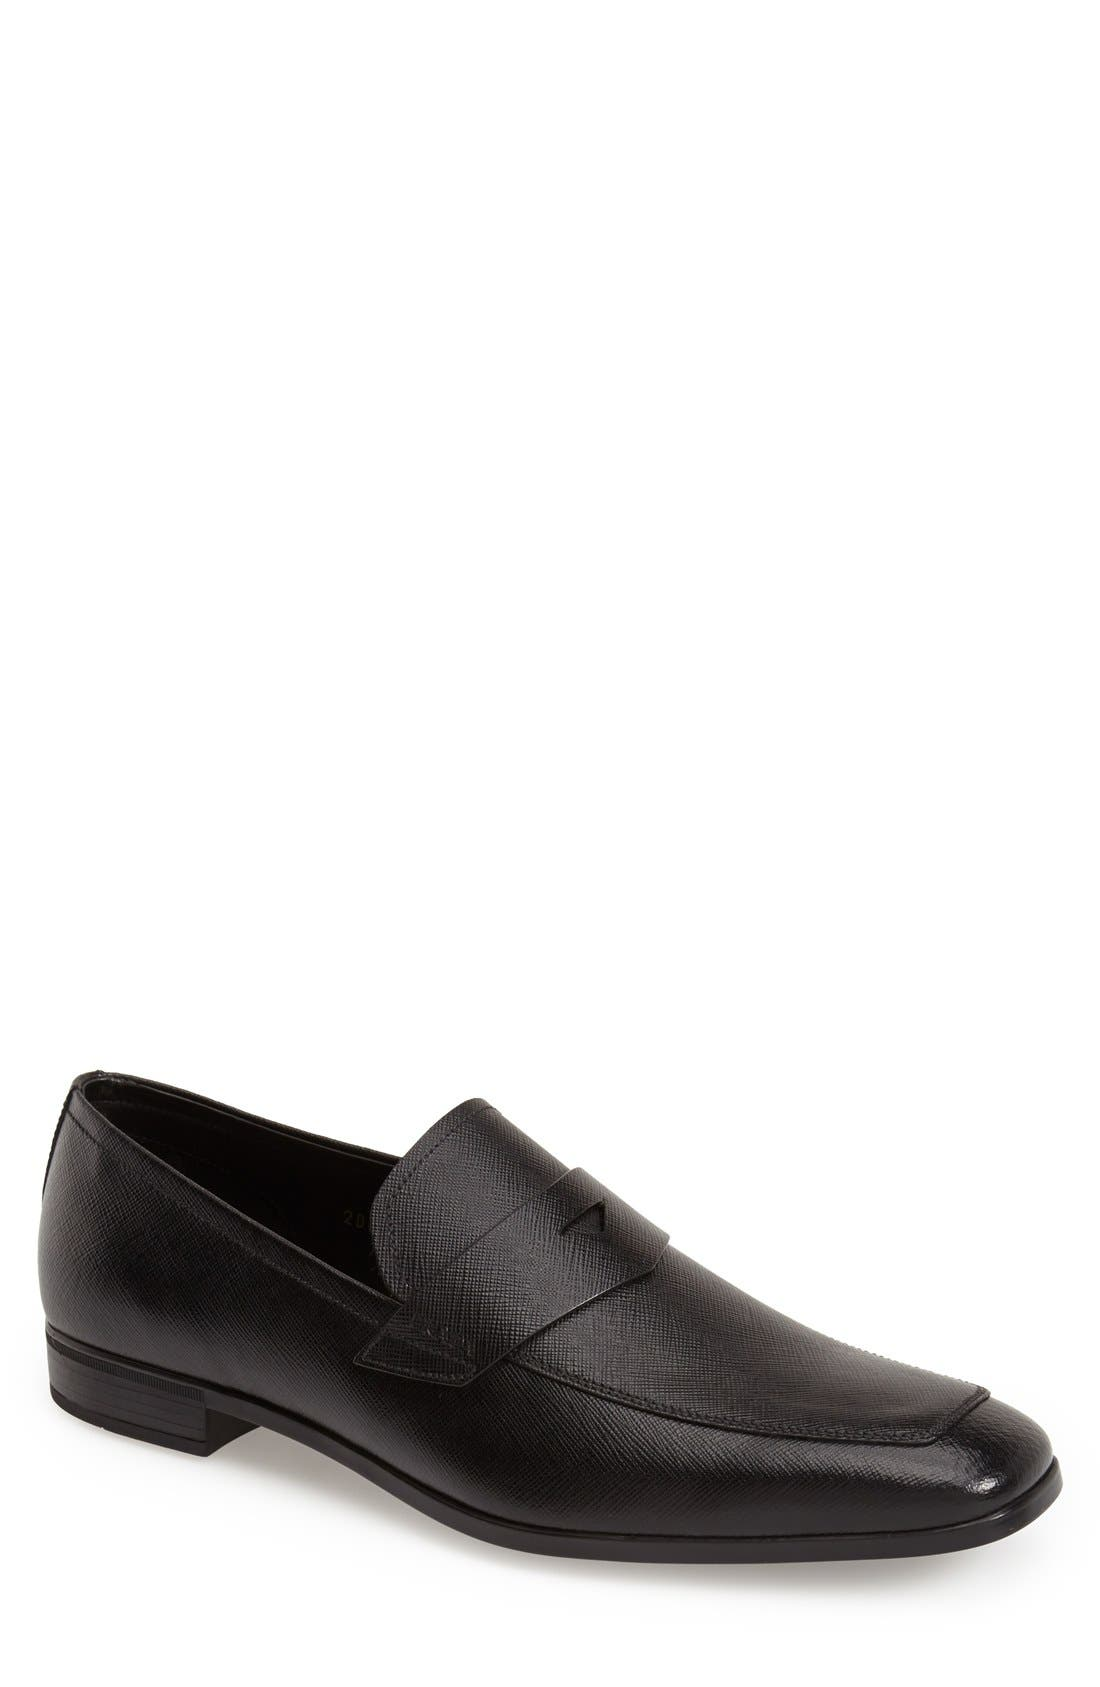 Main Image - Prada Saffiano Leather Penny Loafer (Men)